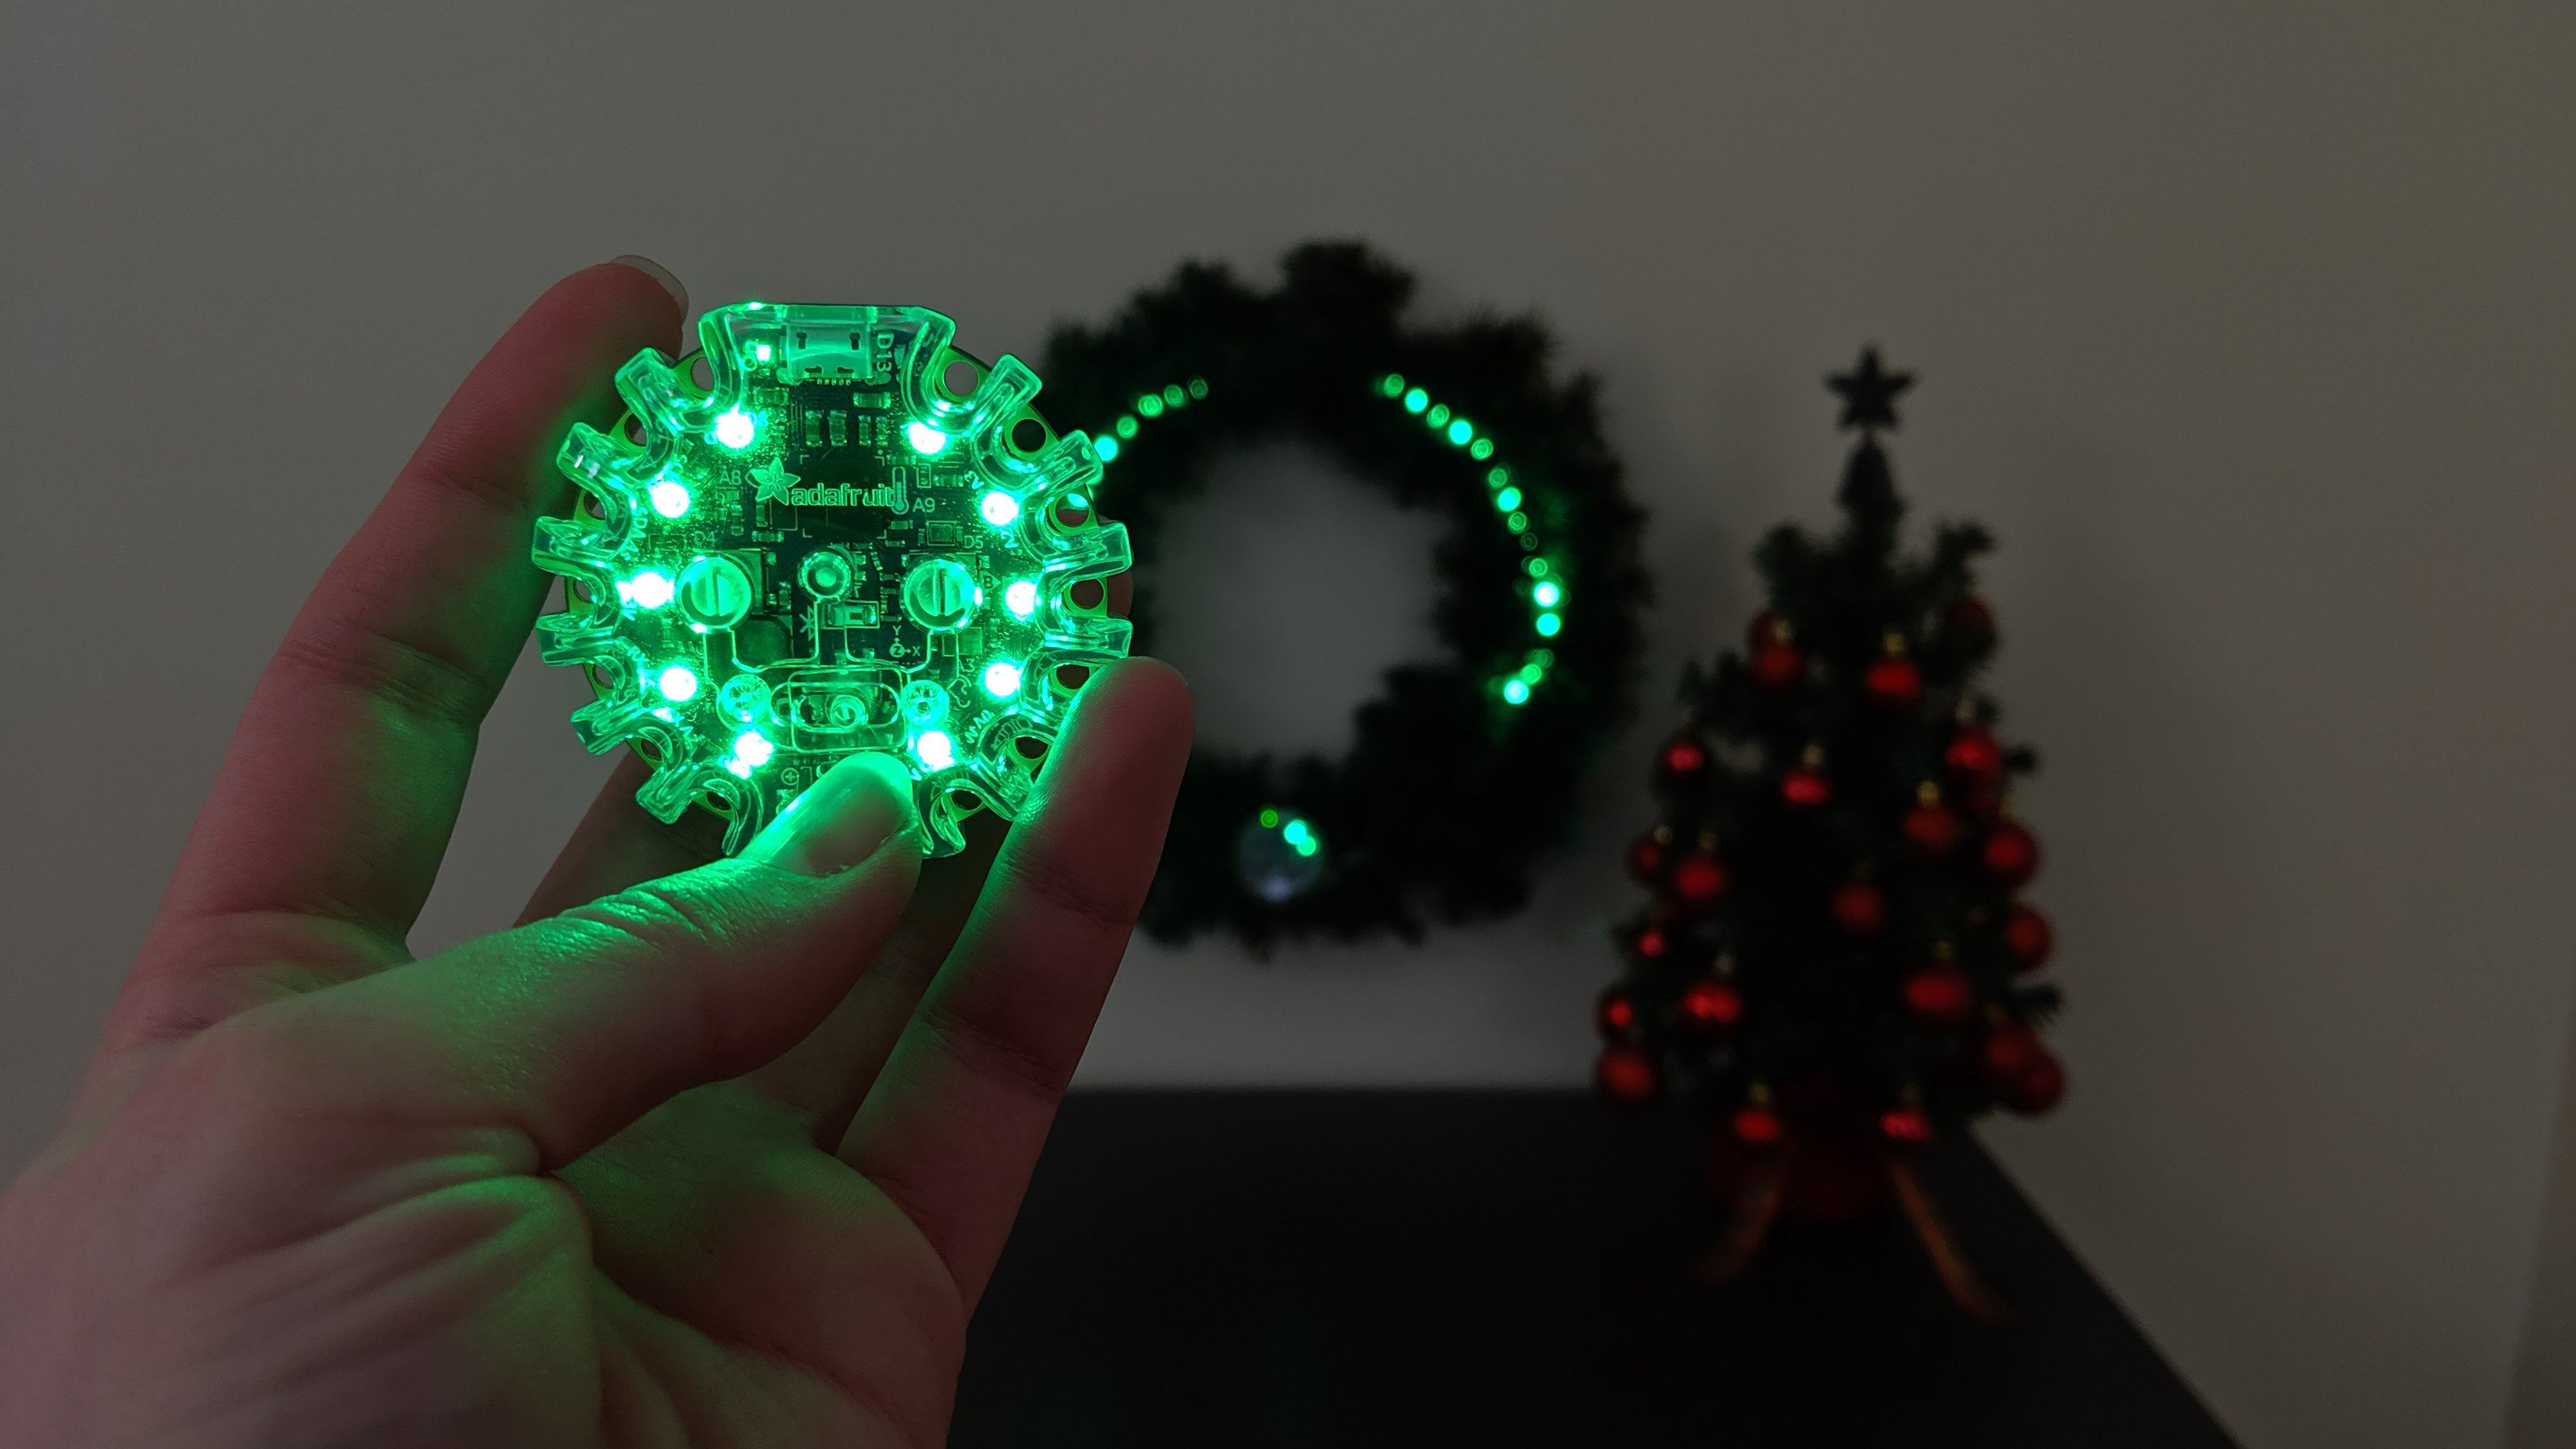 leds_CPB_NeoPixel_Controller_Remote_Control_Green.jpg